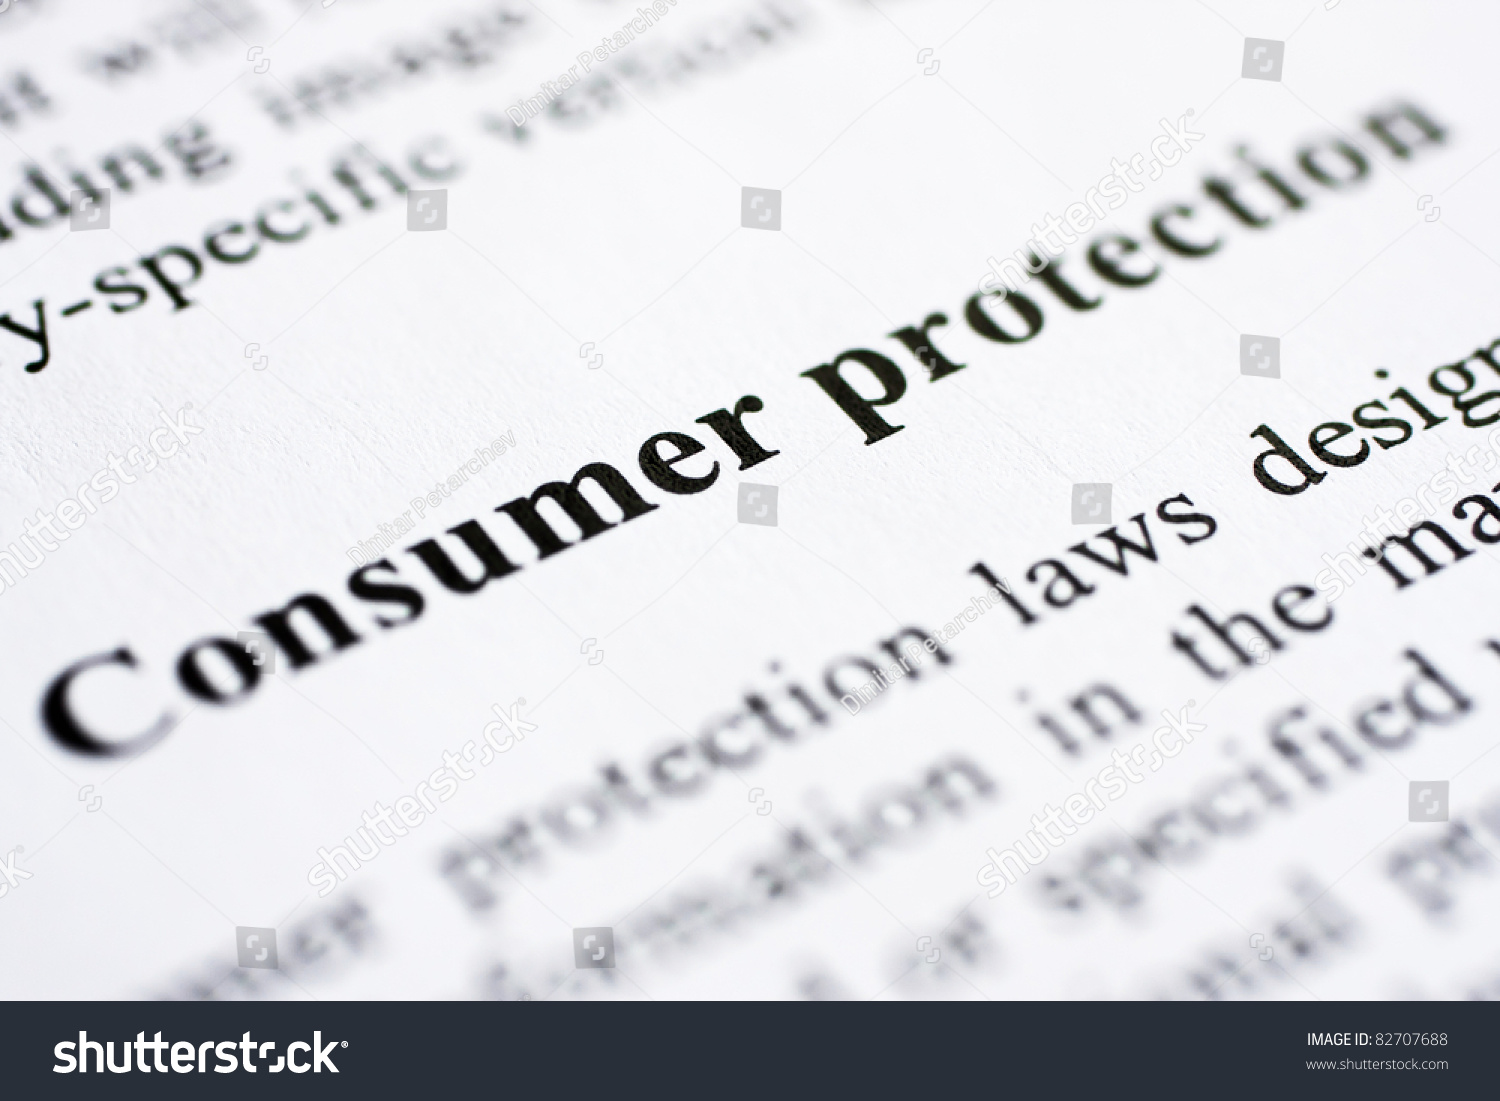 Words Consumer Protection Shot Artistic Selective Stock